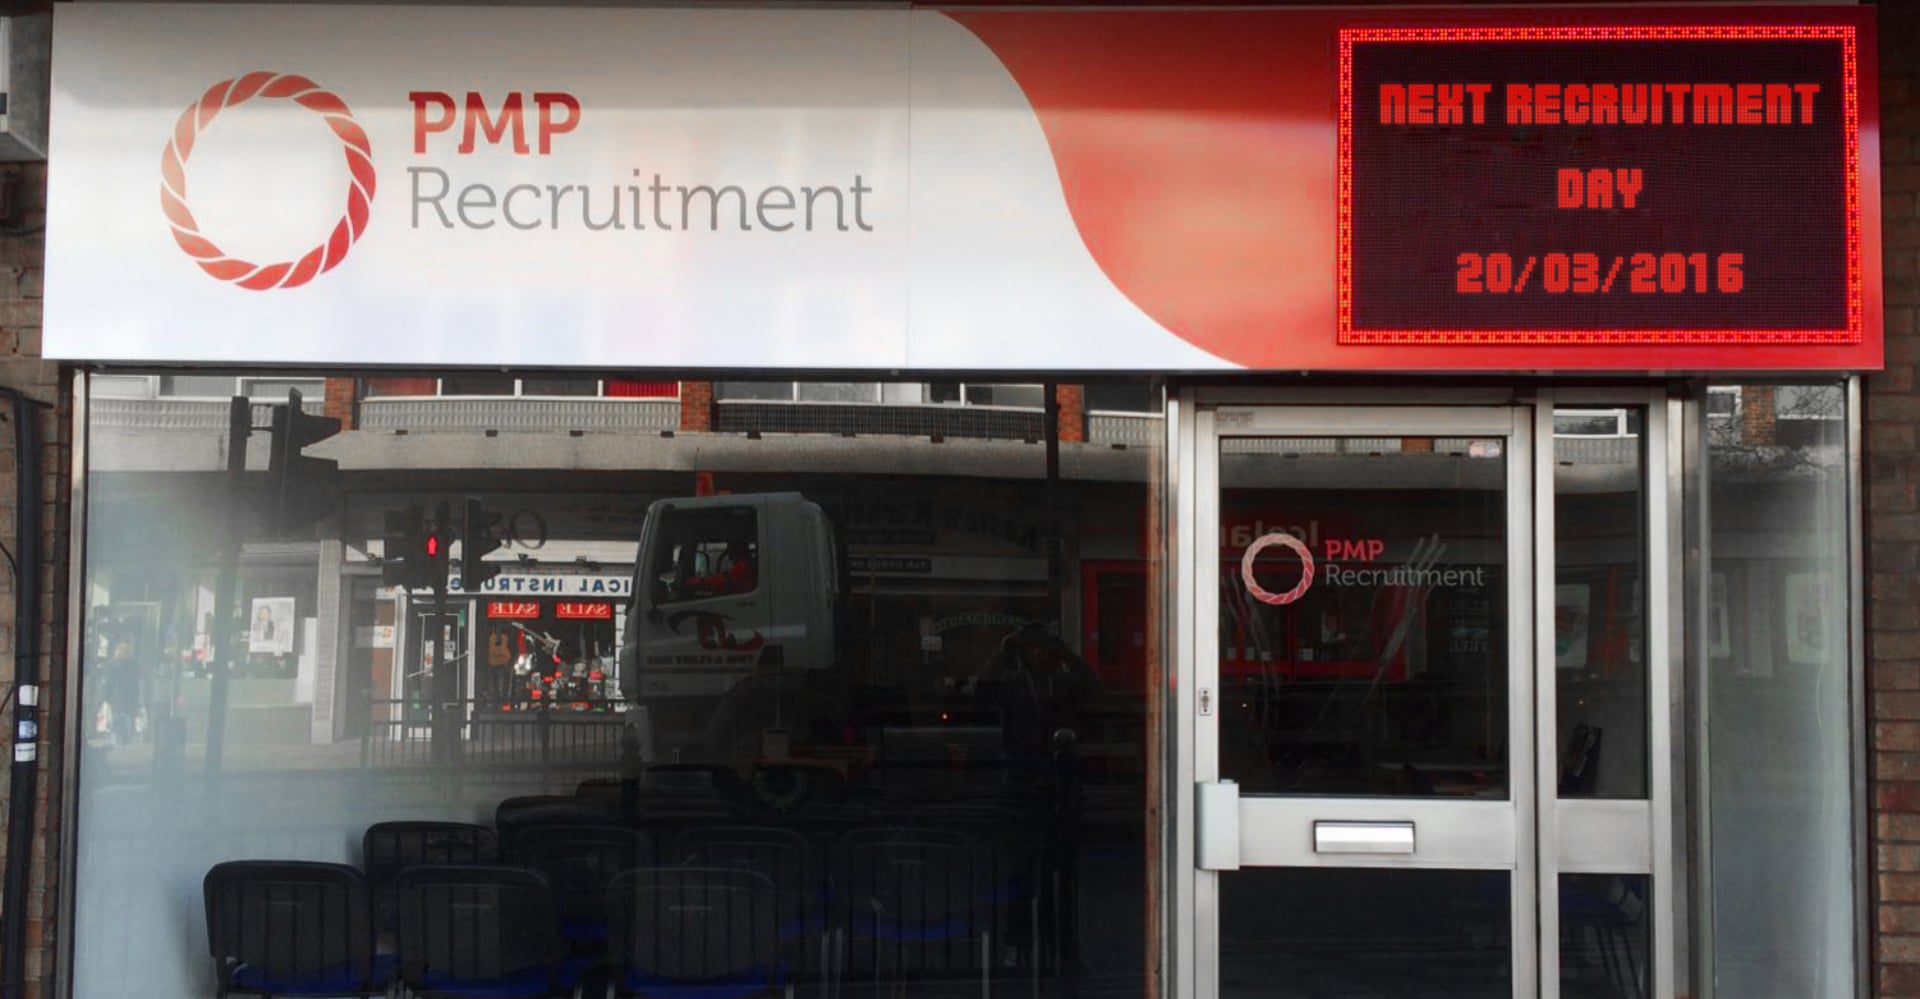 LED and corporate signage for PMP Recruitment in Bedford and